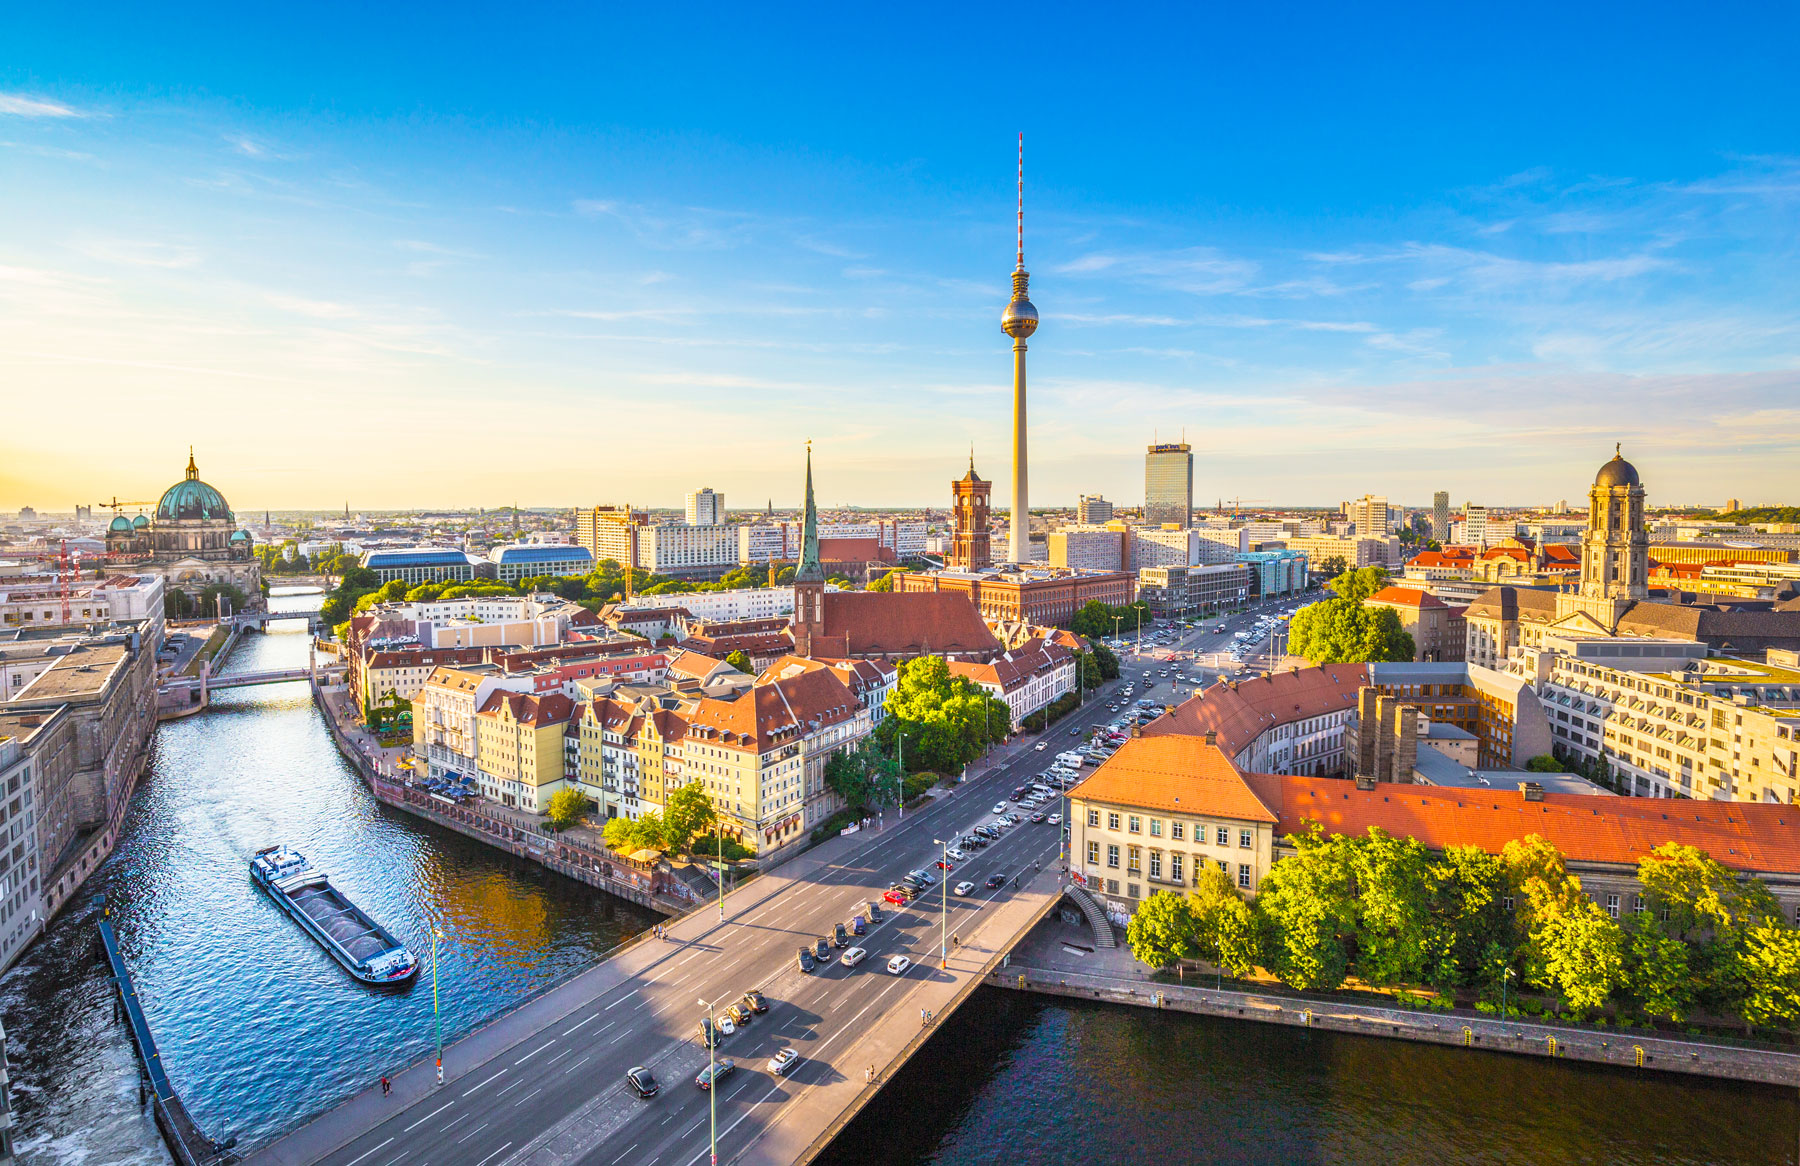 Image for Fully inclusive paid teaching internship in Germany. Perfect for first time English teachers, internationally accredited TEFL training included.